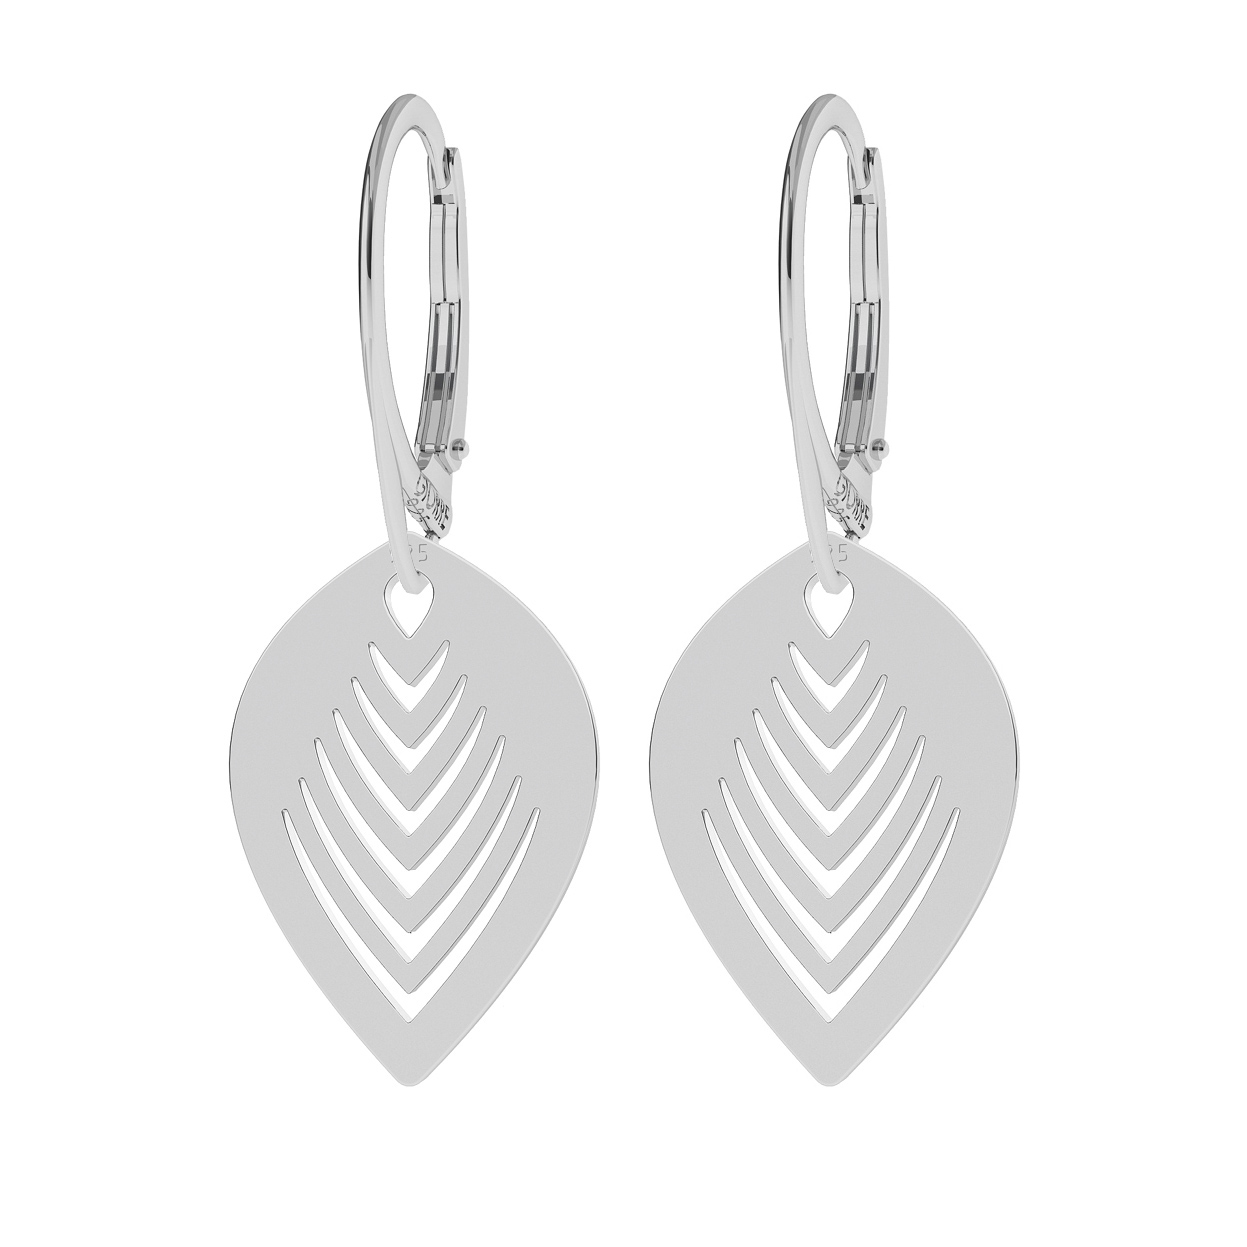 PALM LEAVES EARRINGS STERLING SILVER 925